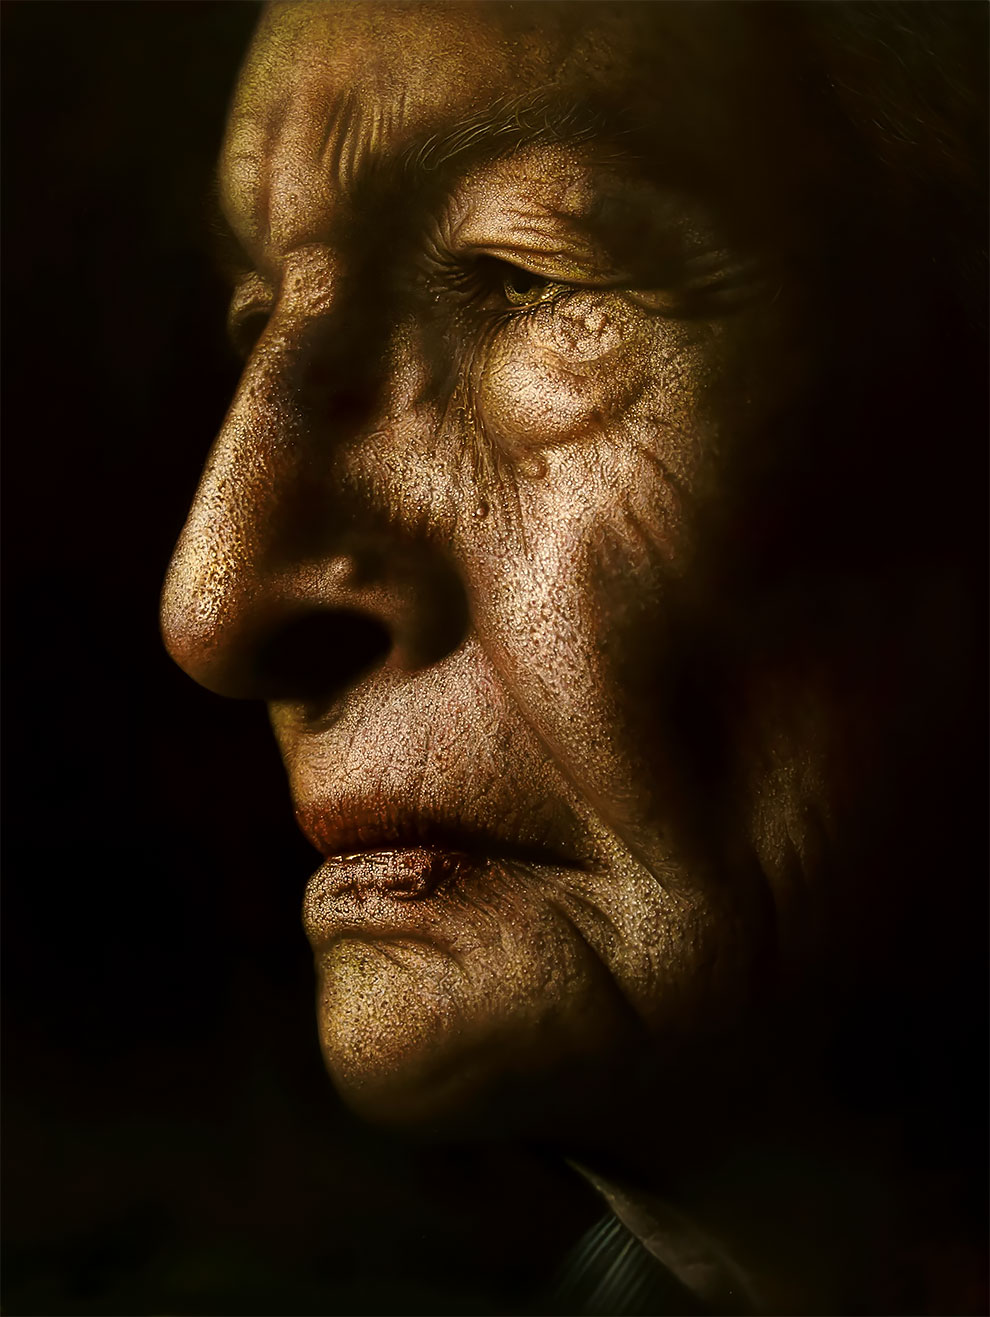 realistic paintings face by kamalky laureano